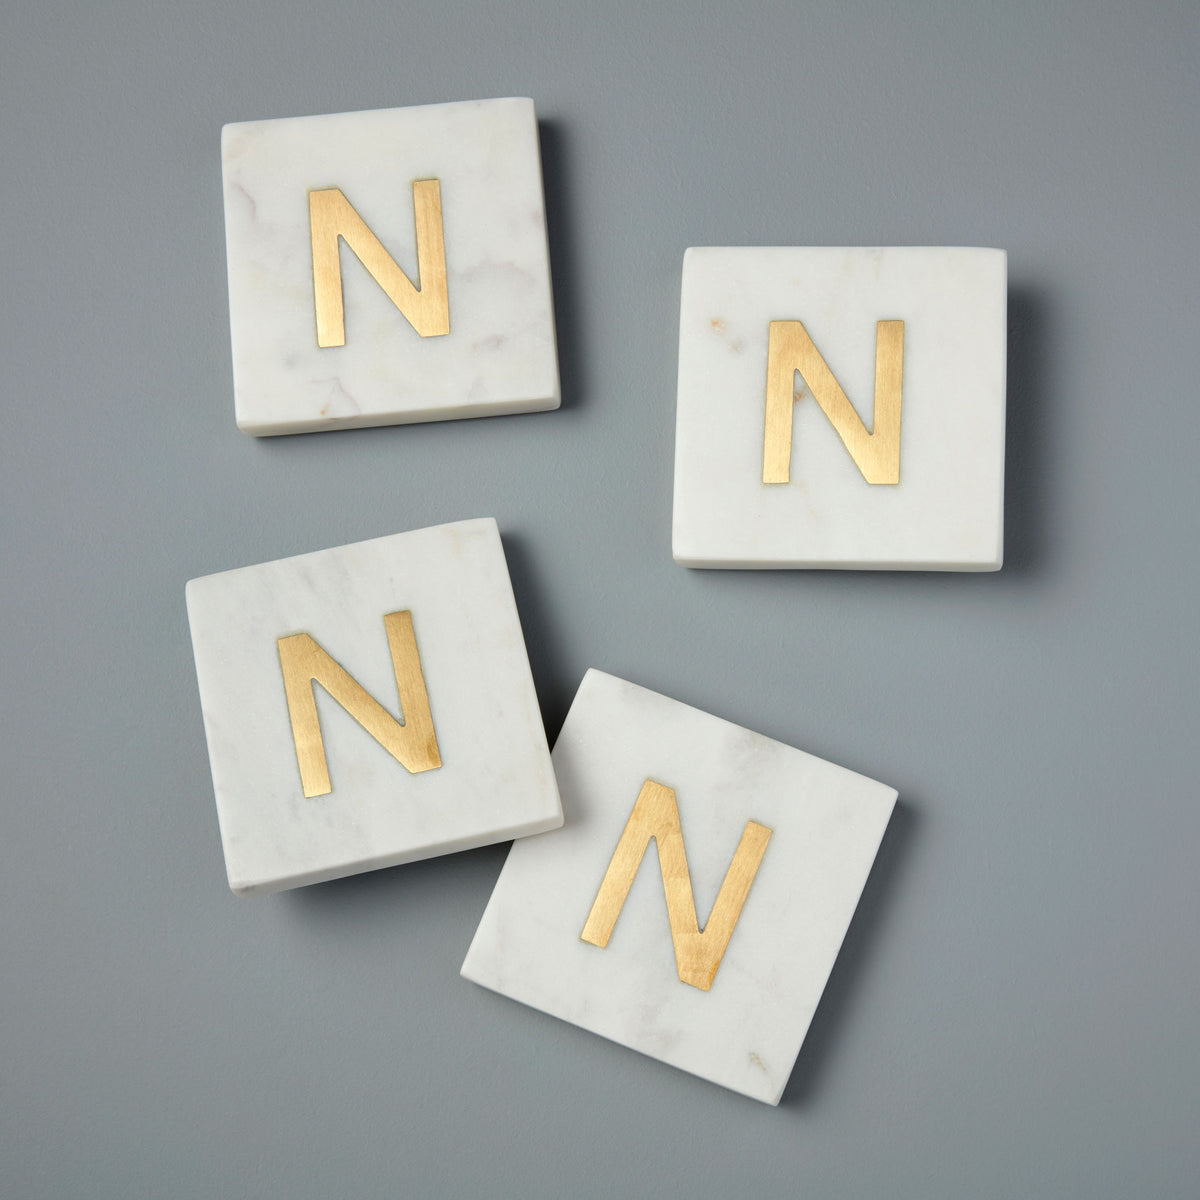 Verona Monogram Coasters, Set of 4 - N